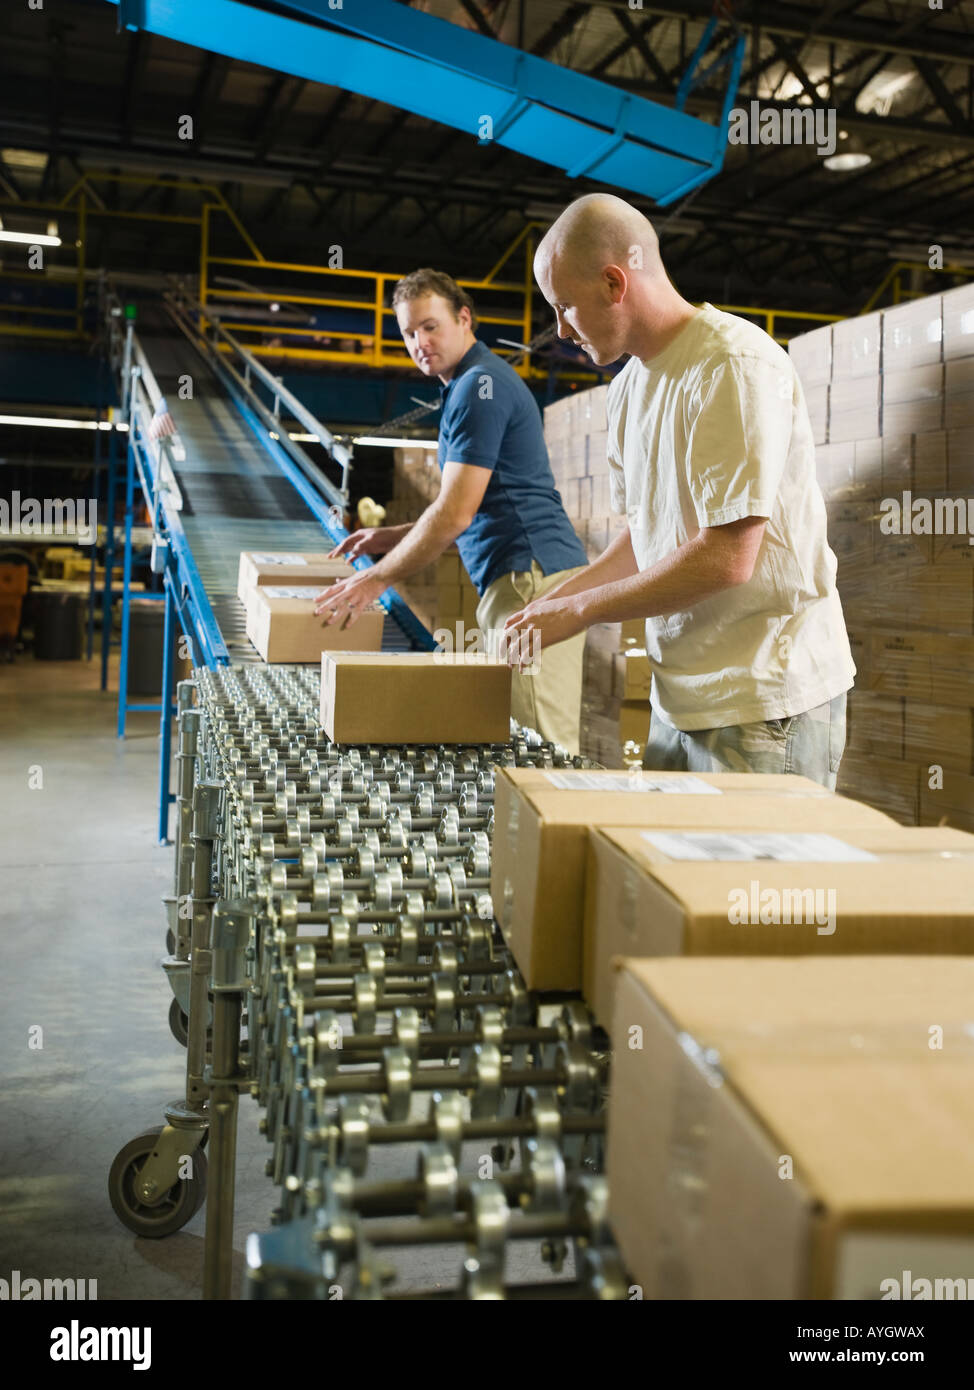 Warehouse workers checking packages on conveyor belt - Stock Image